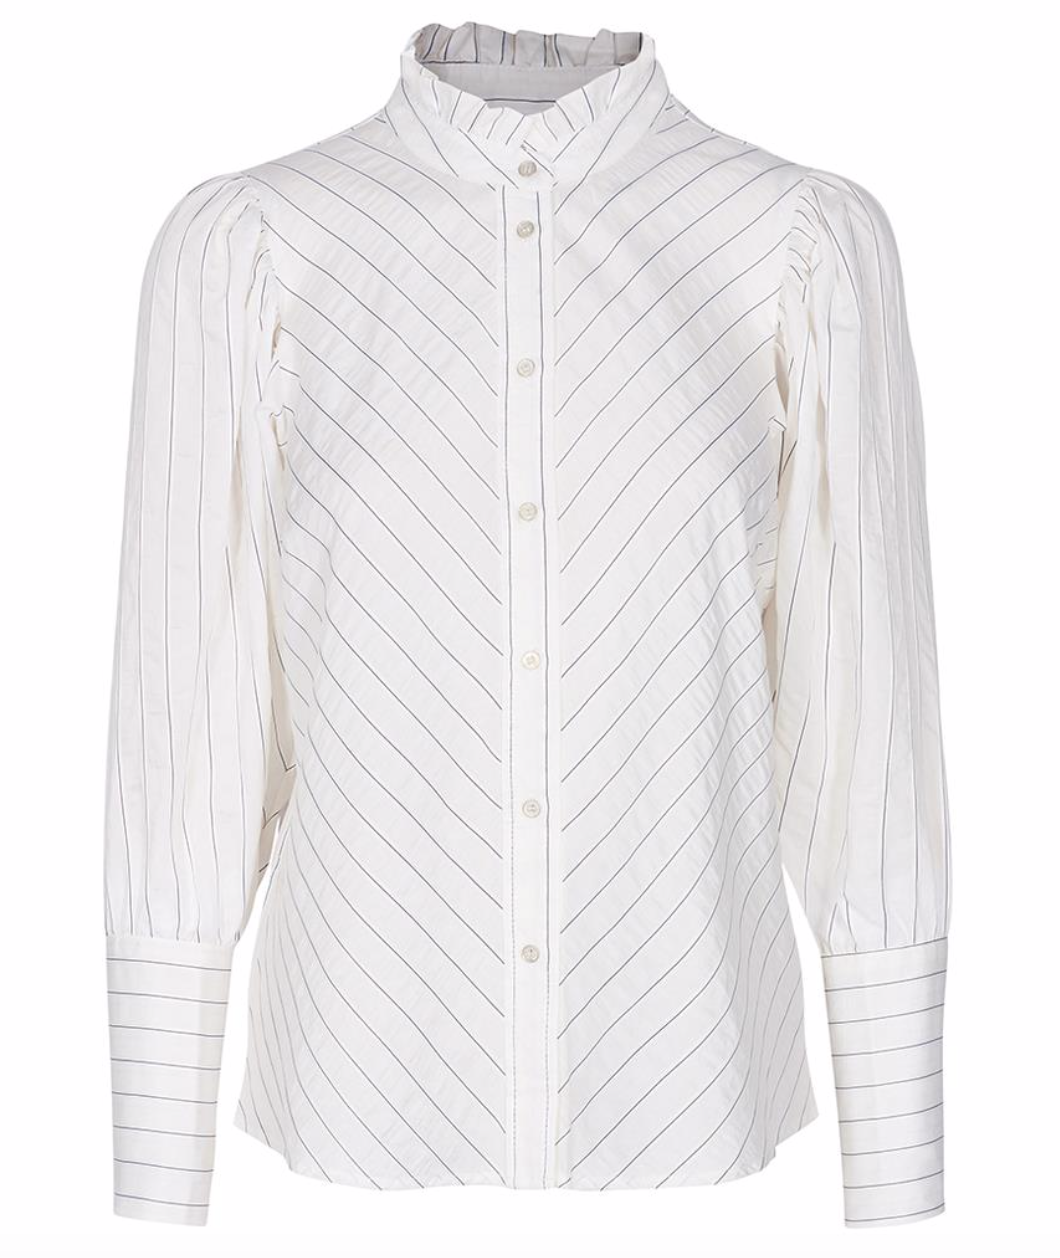 Co'Couture Dina stripe shirt - off white